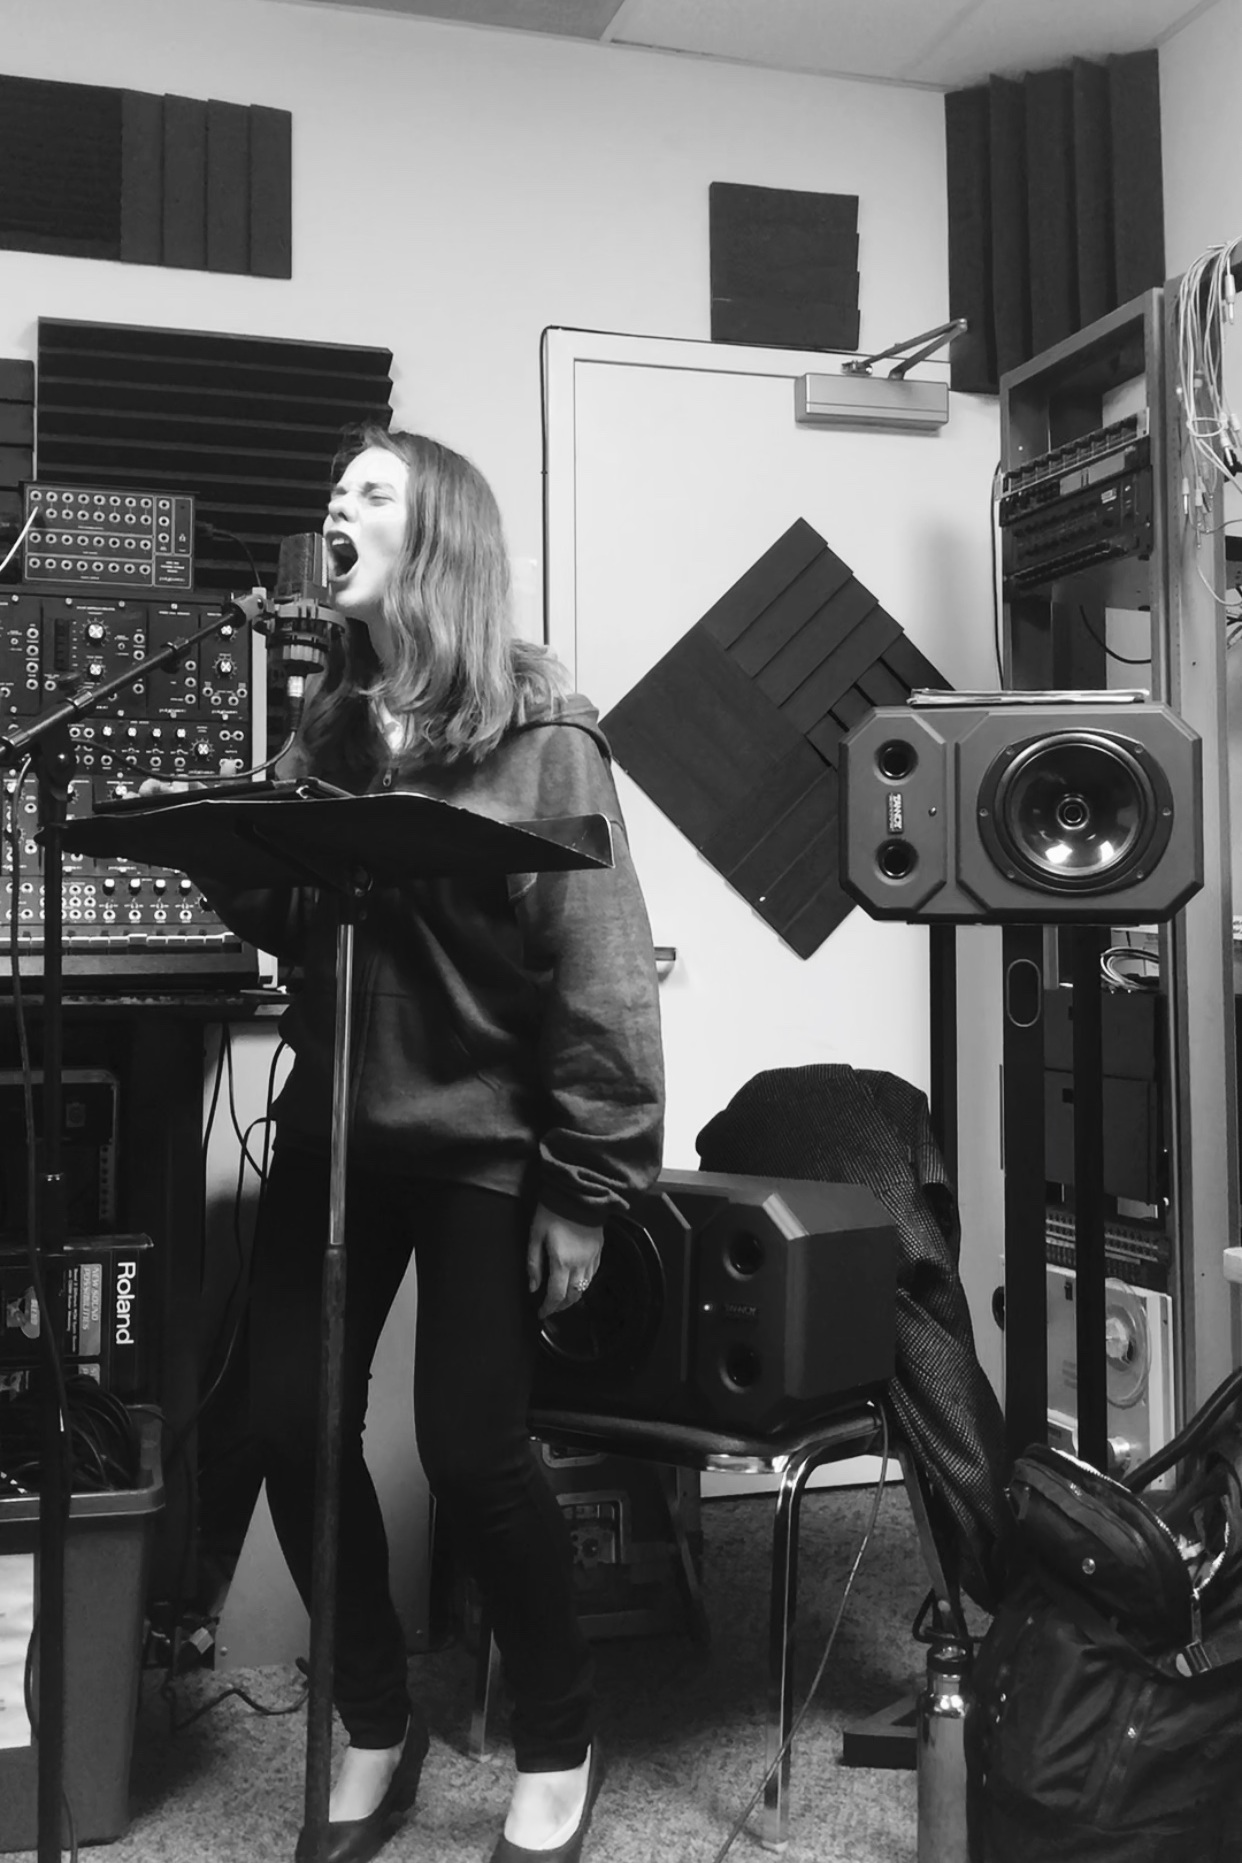 Rose Hegele rehearsing i can feel the universe expanding (2018)